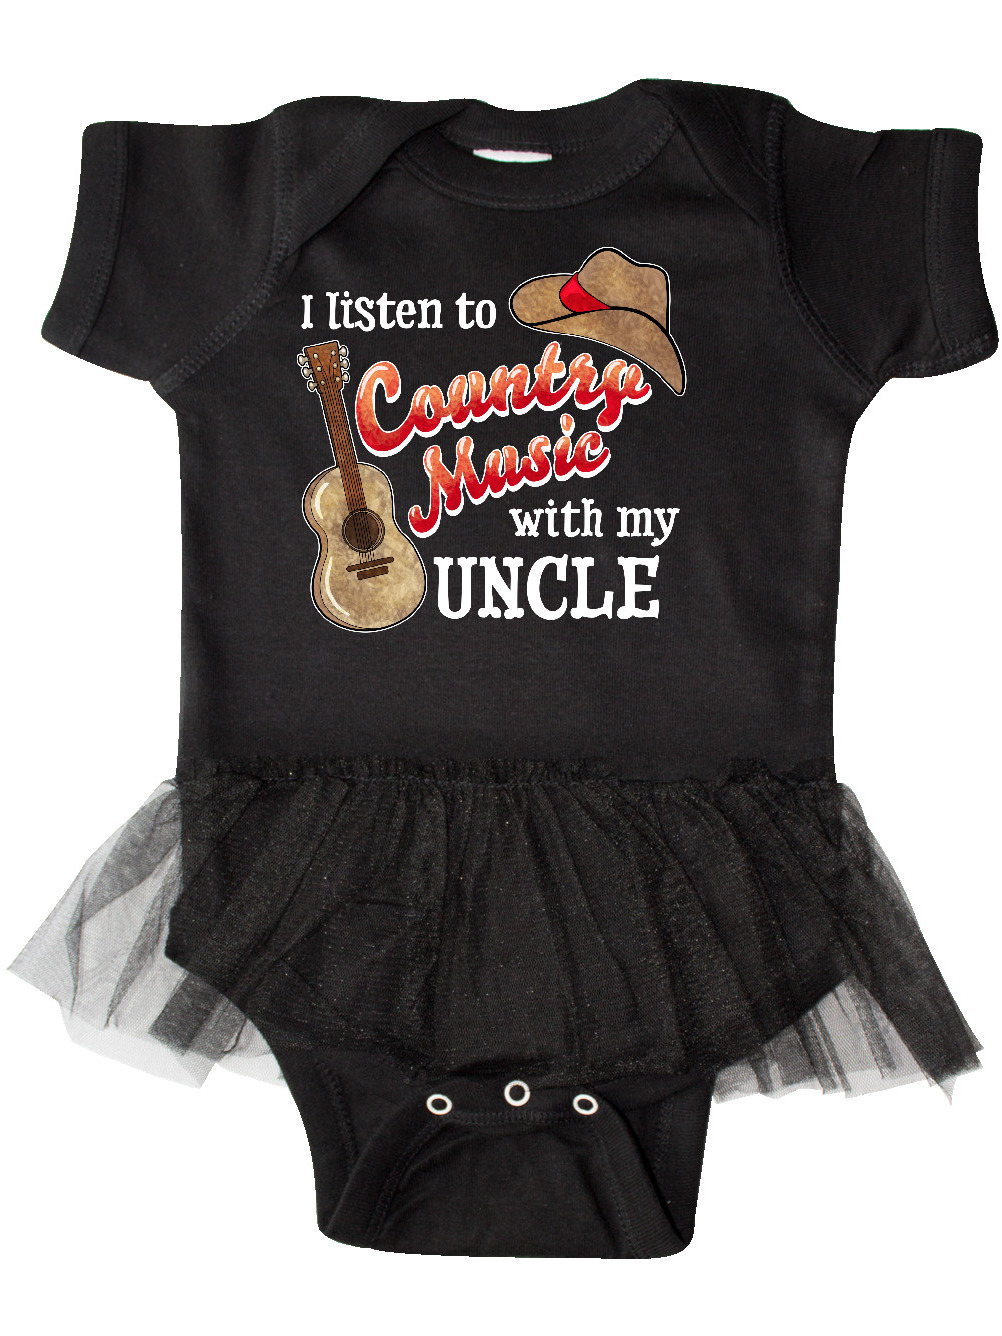 I Listen to Country Music With My Uncle Baby Vests Bodysuits for Boys Girls